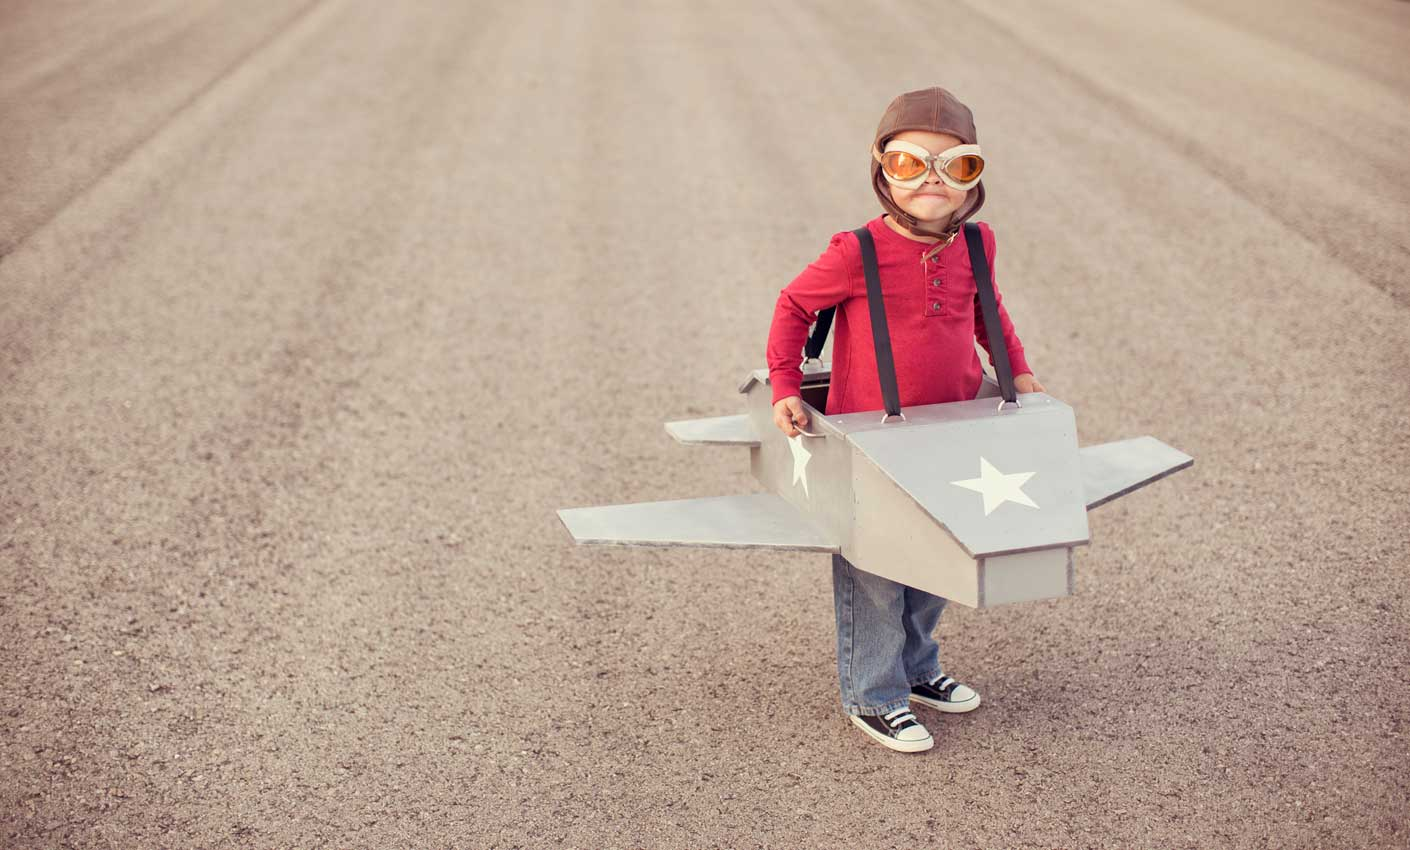 Learn to Fly. Follow your dream